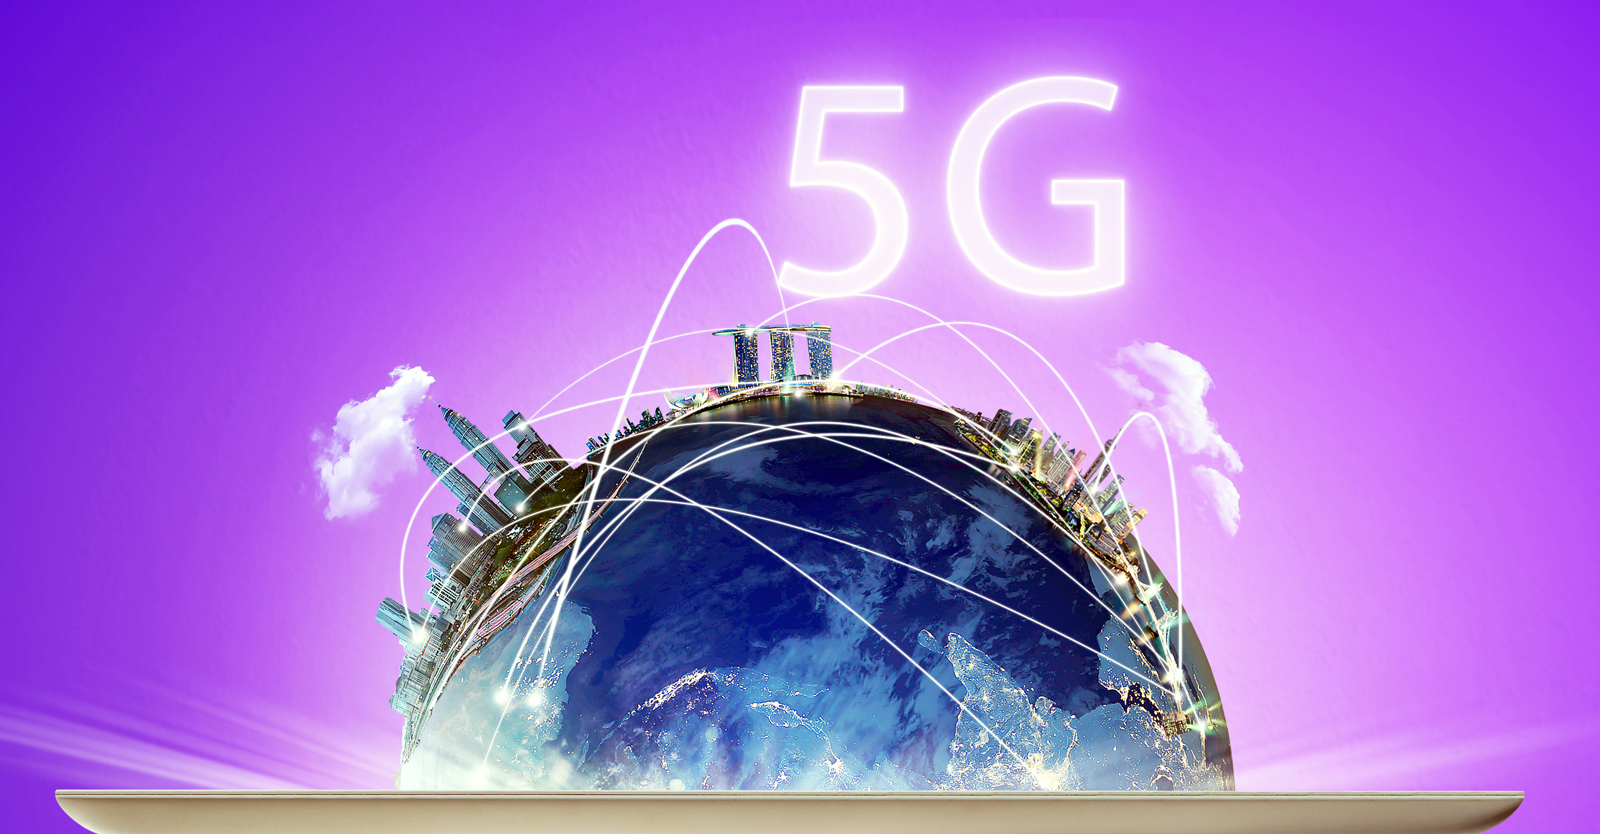 5g-rollout-in-france-would-cause-big-increase-in-greenhouse-gas-emissions-•-children's-health-defense